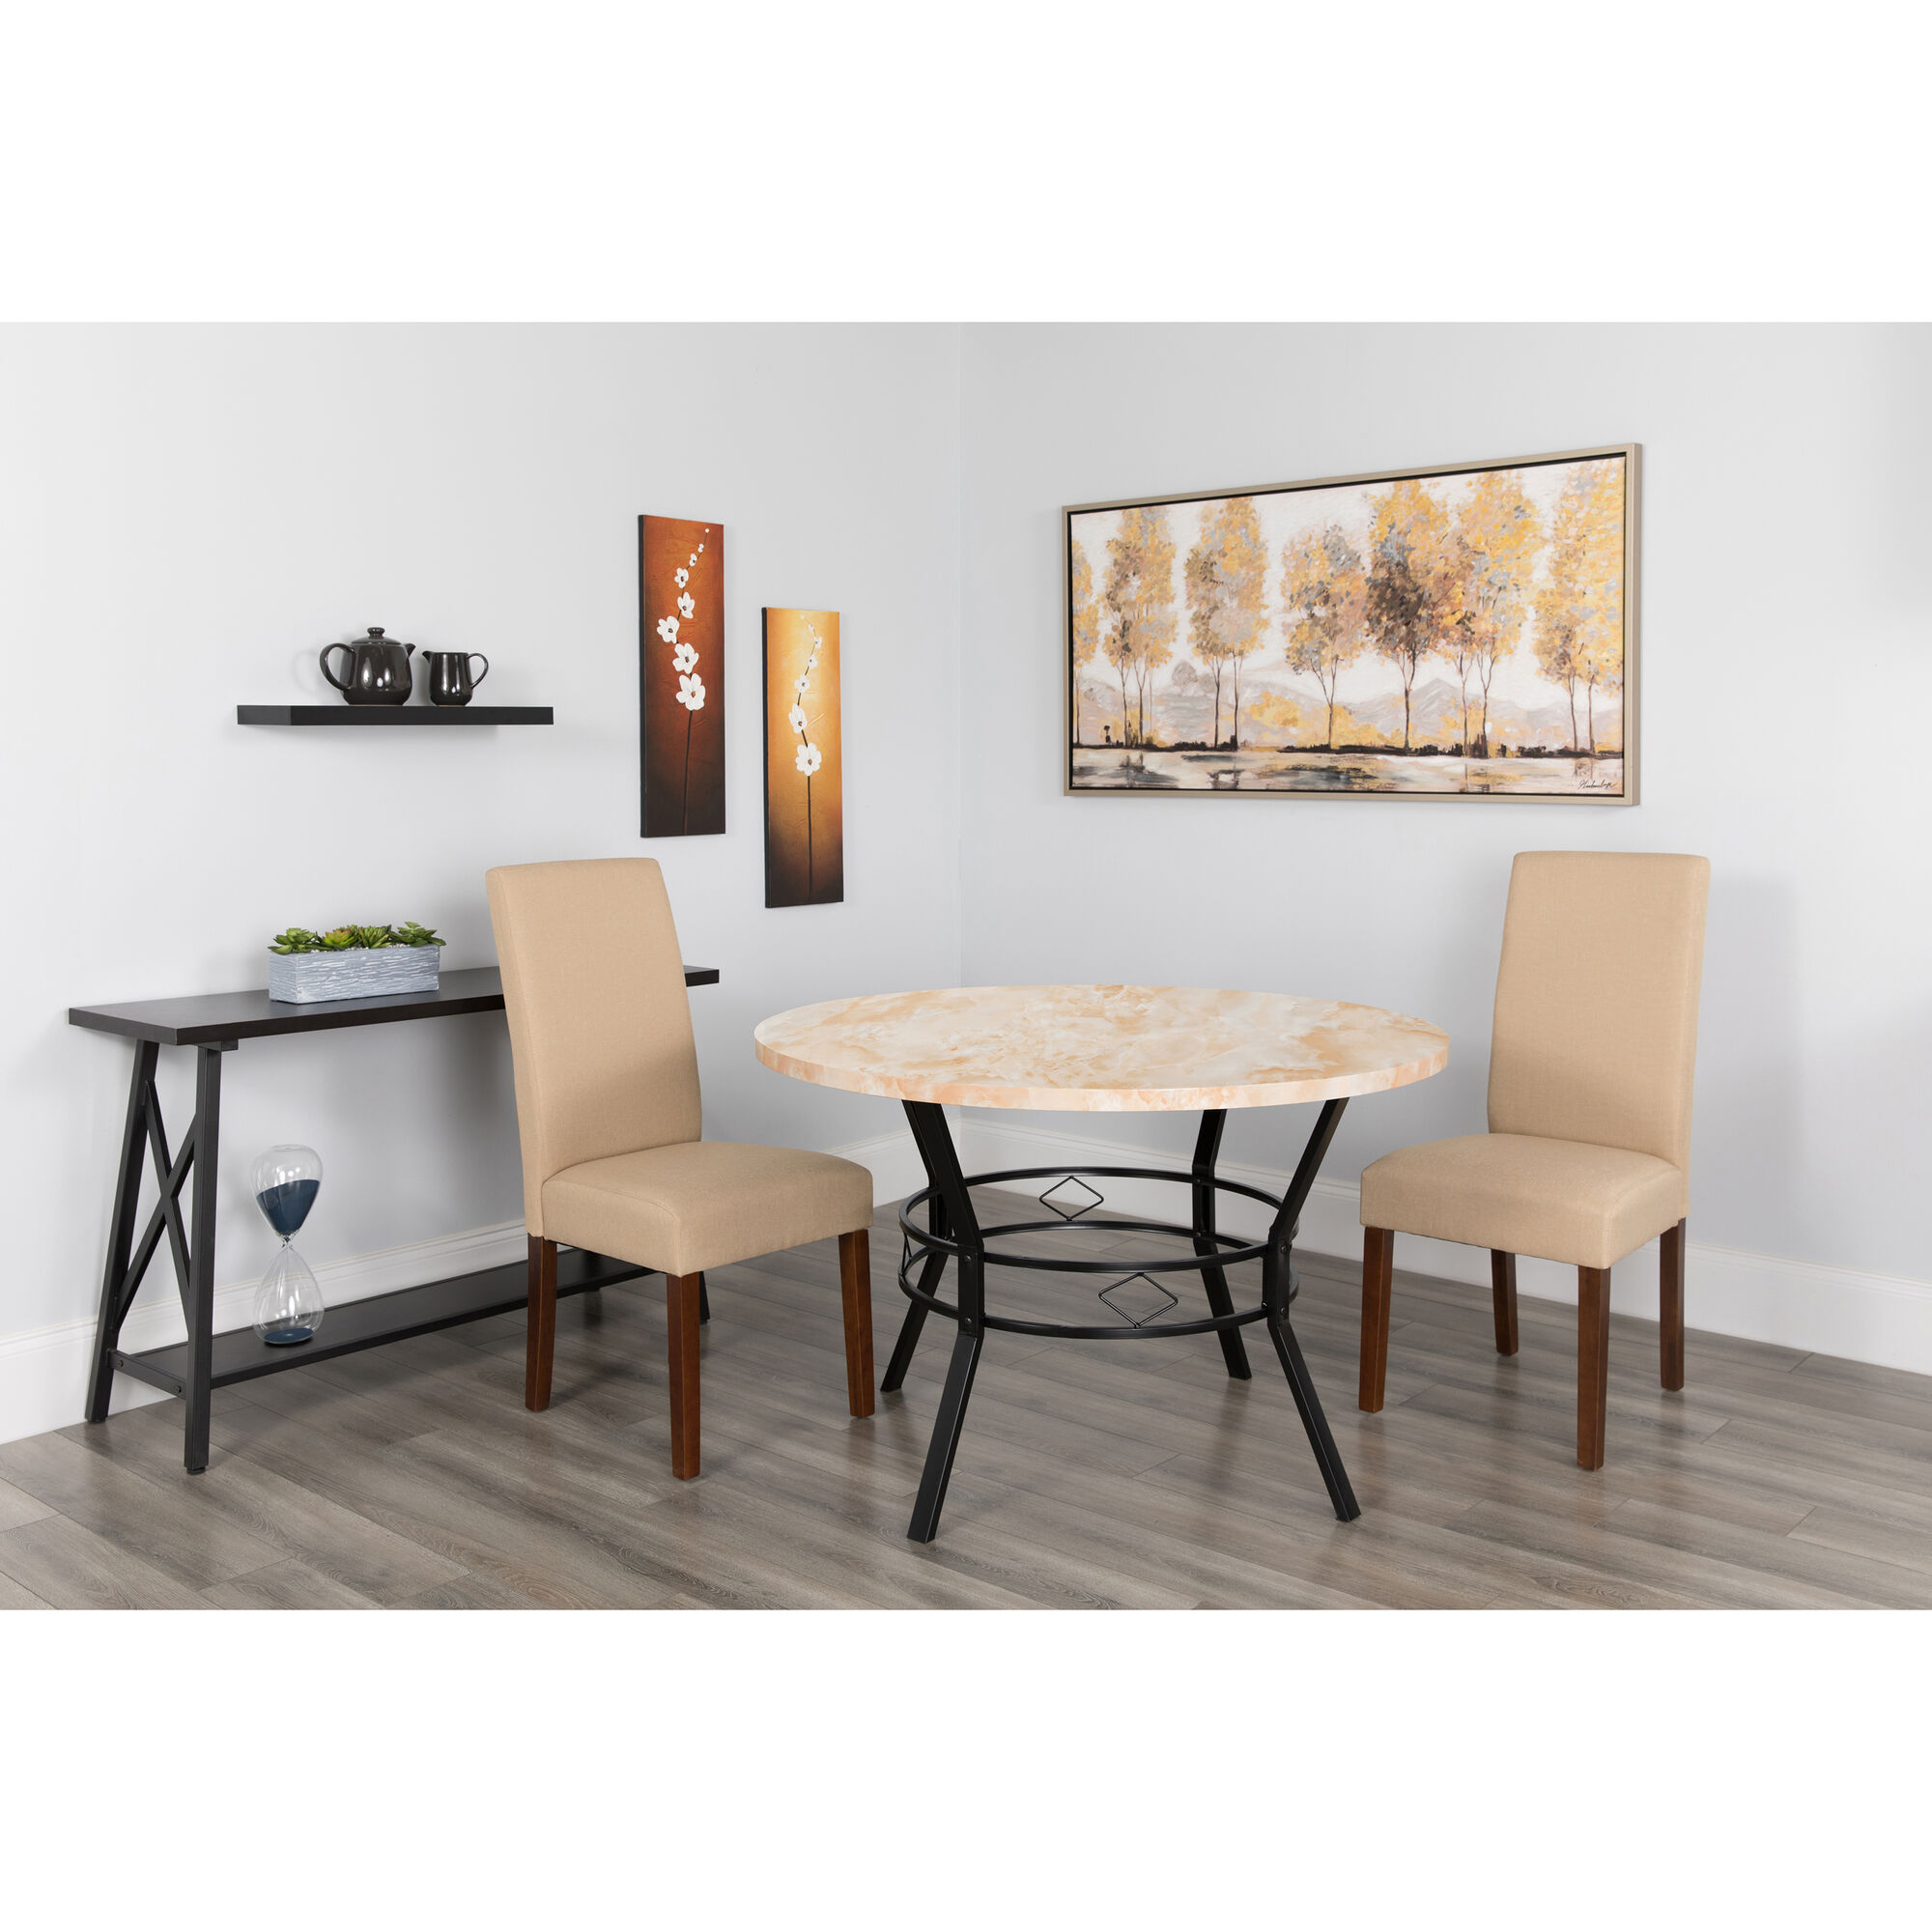 Our tremont quot round dining table in quartz marble like